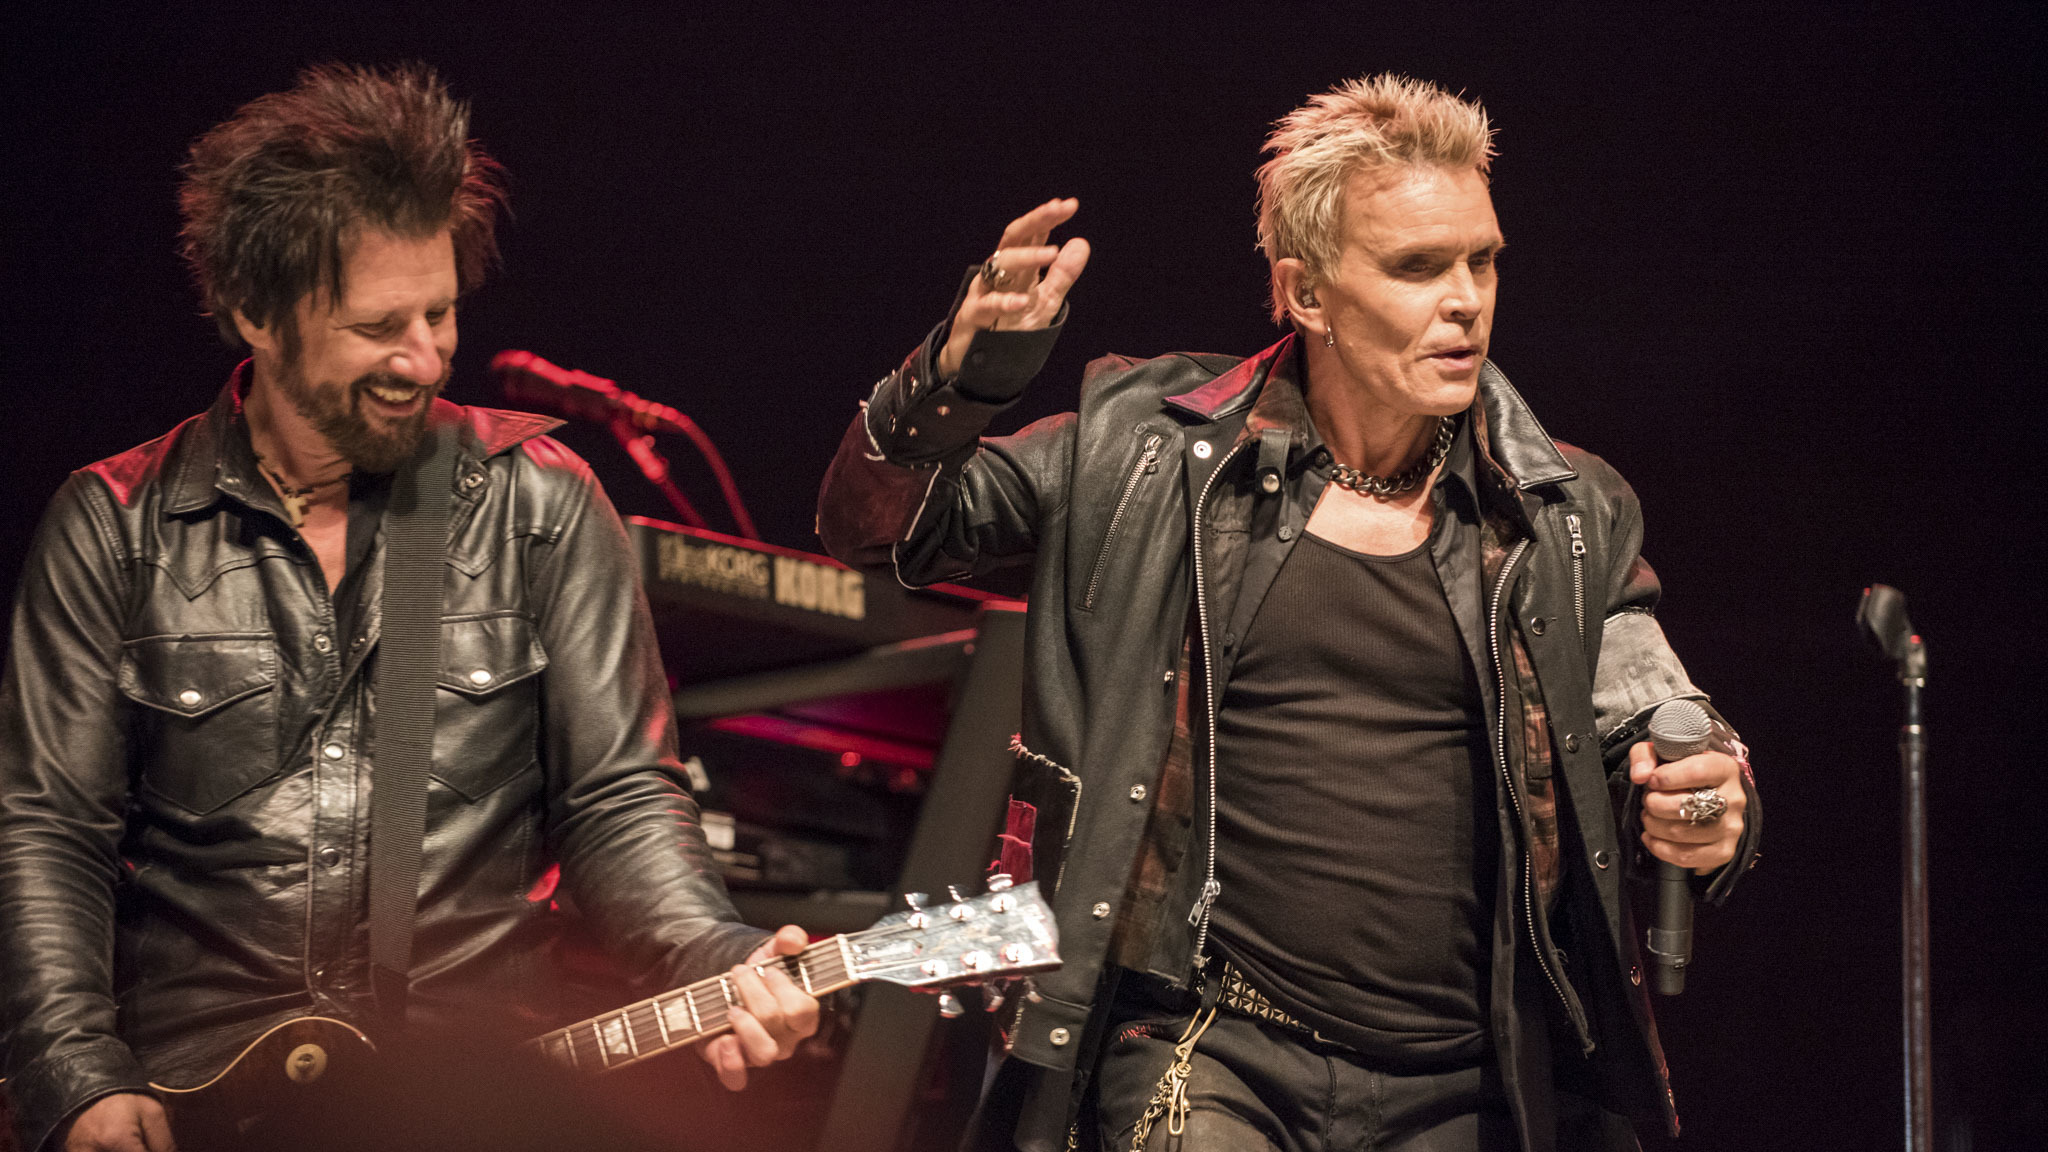 Billy Idol took the stage on day two of Riot Fest, September 12, 2015.